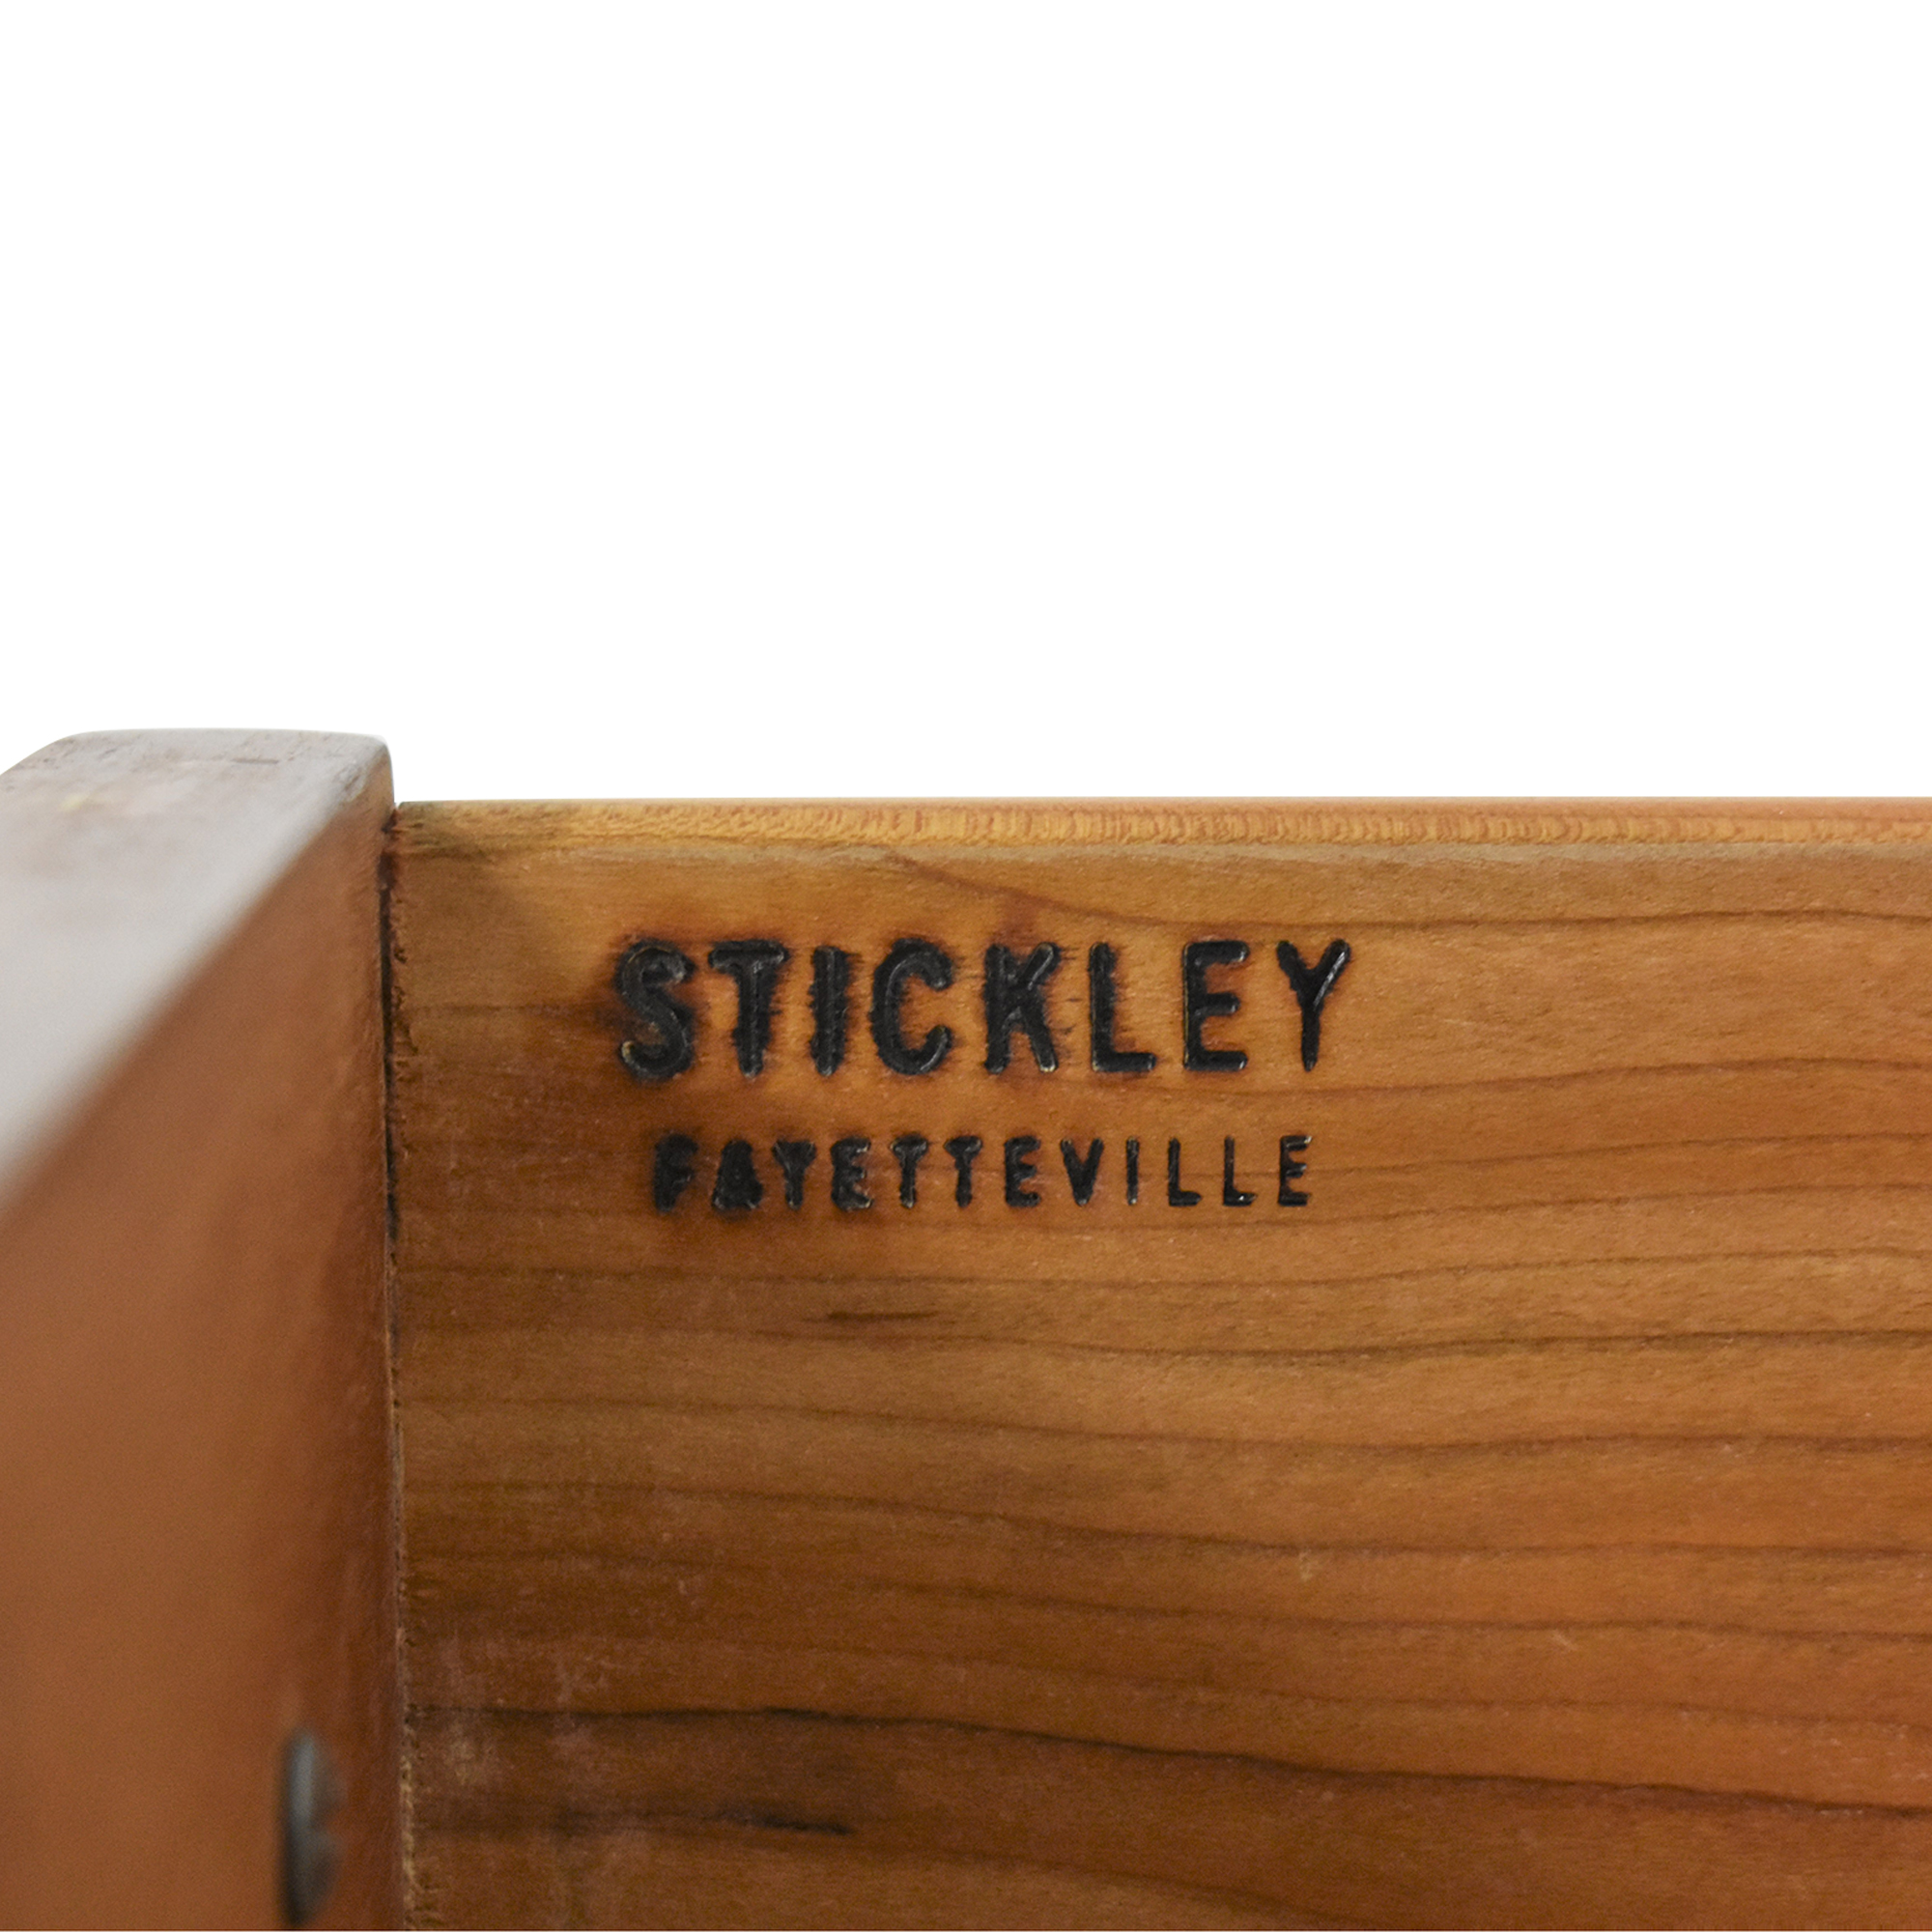 Stickley Furniture Stickley Furniture Four Drawer Chest second hand